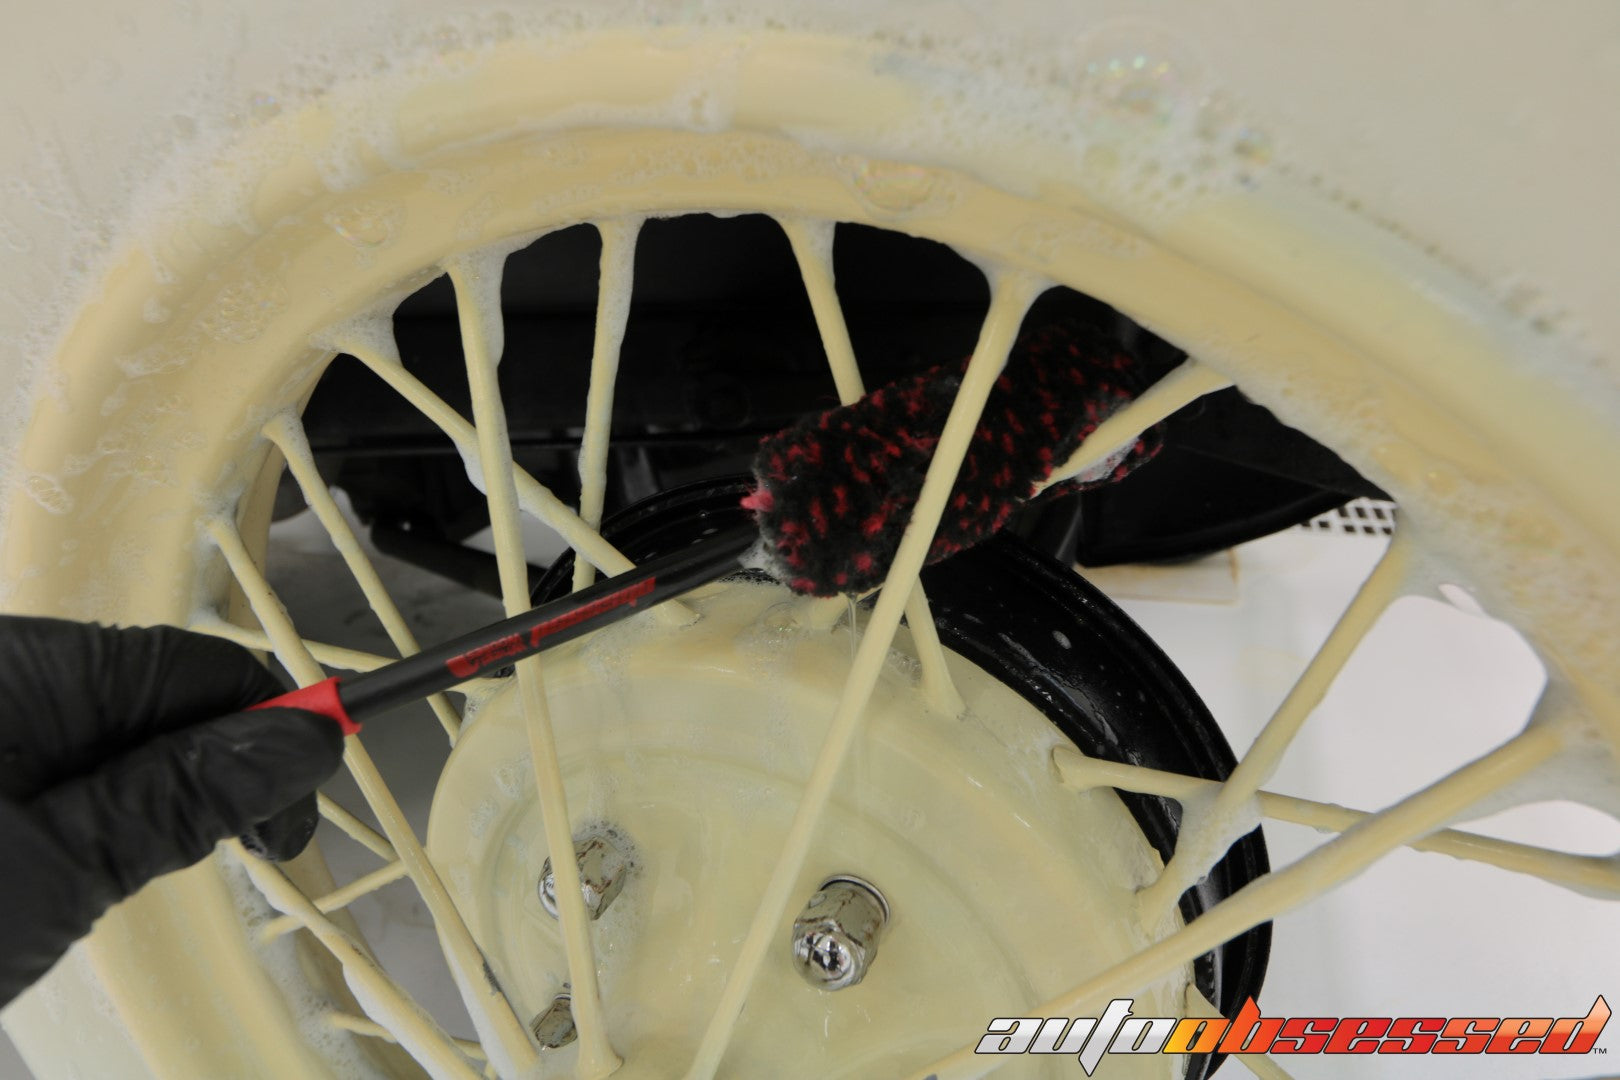 1928 Ford Model A Wheel Brushes Wheel Cleaner - Auto Obsessed